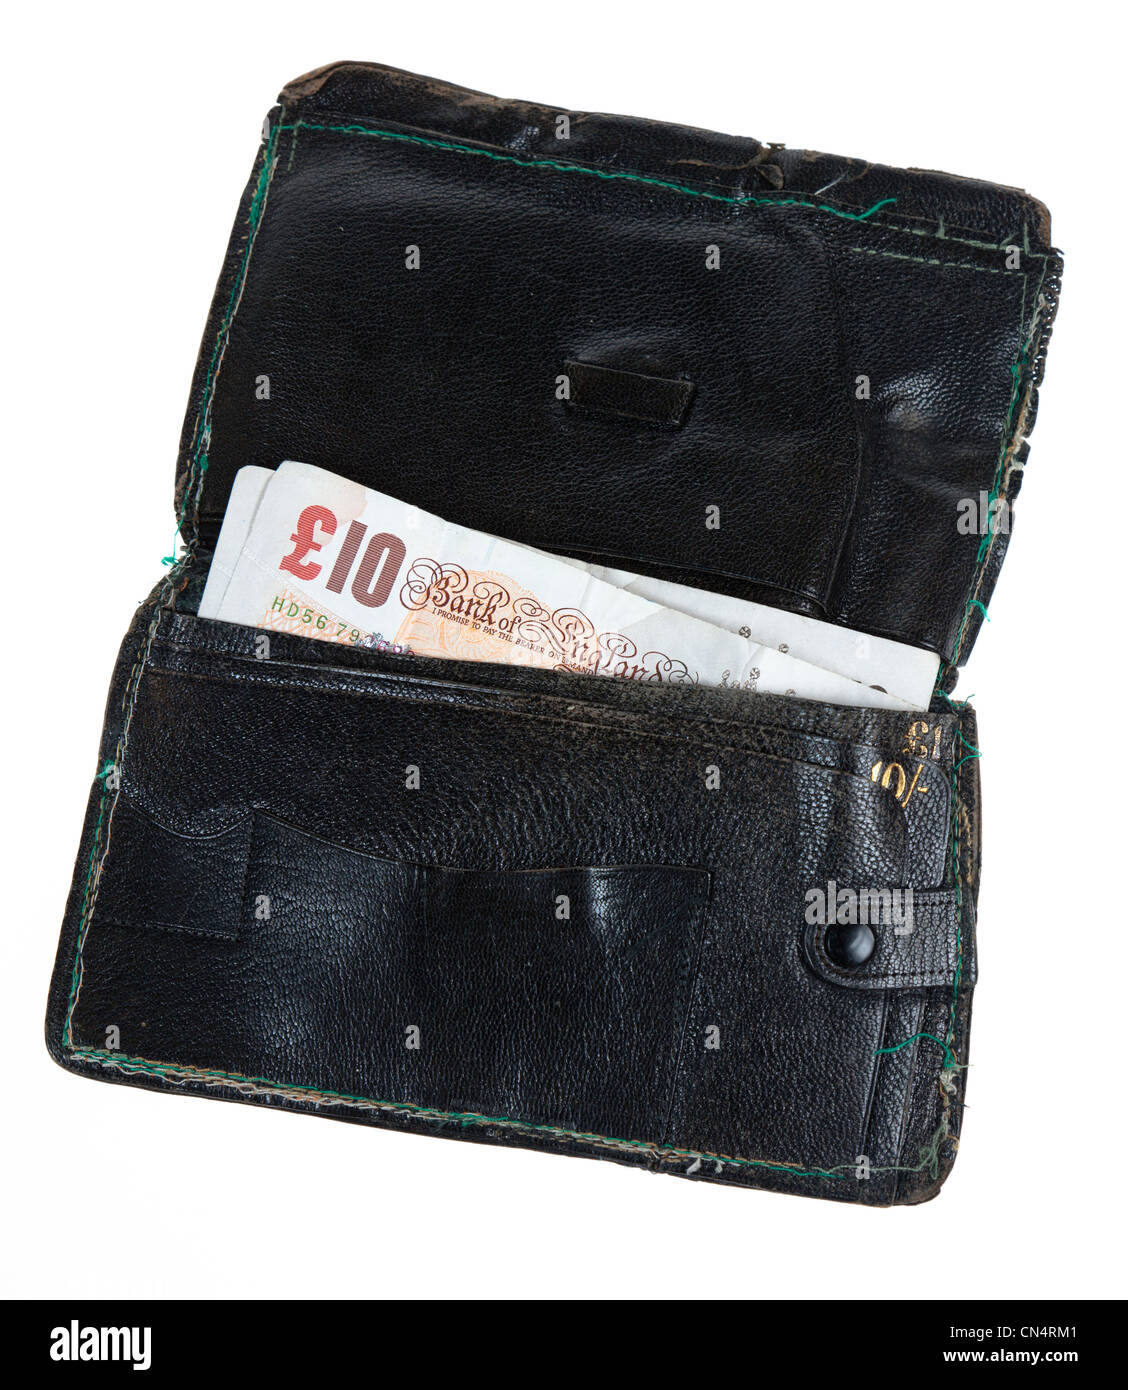 Old and worn leather wallet with ten pound notes inside, UK - Stock Image